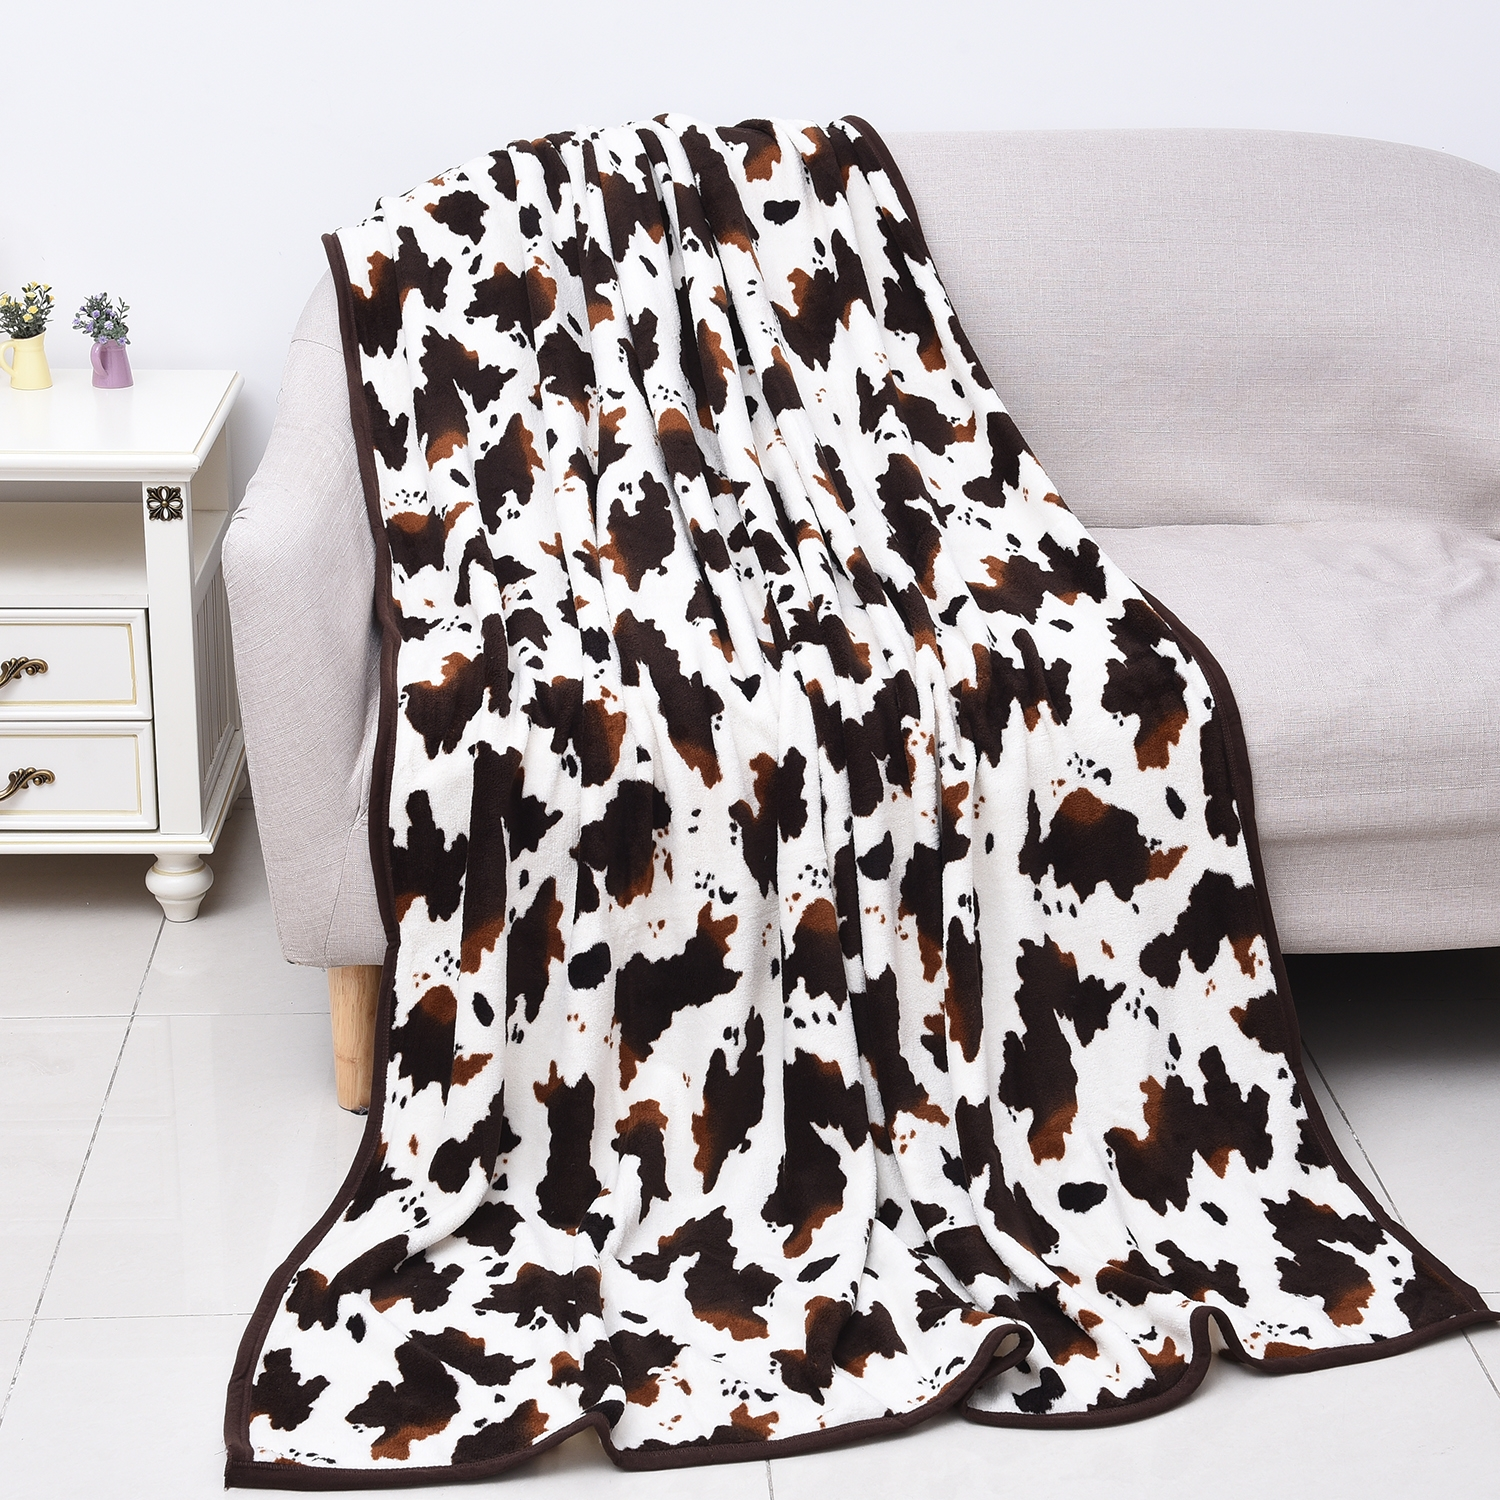 Home Smart Brown Cow Print Warm Cozy Coral Fleece Blanket Walmart Com Walmart Com